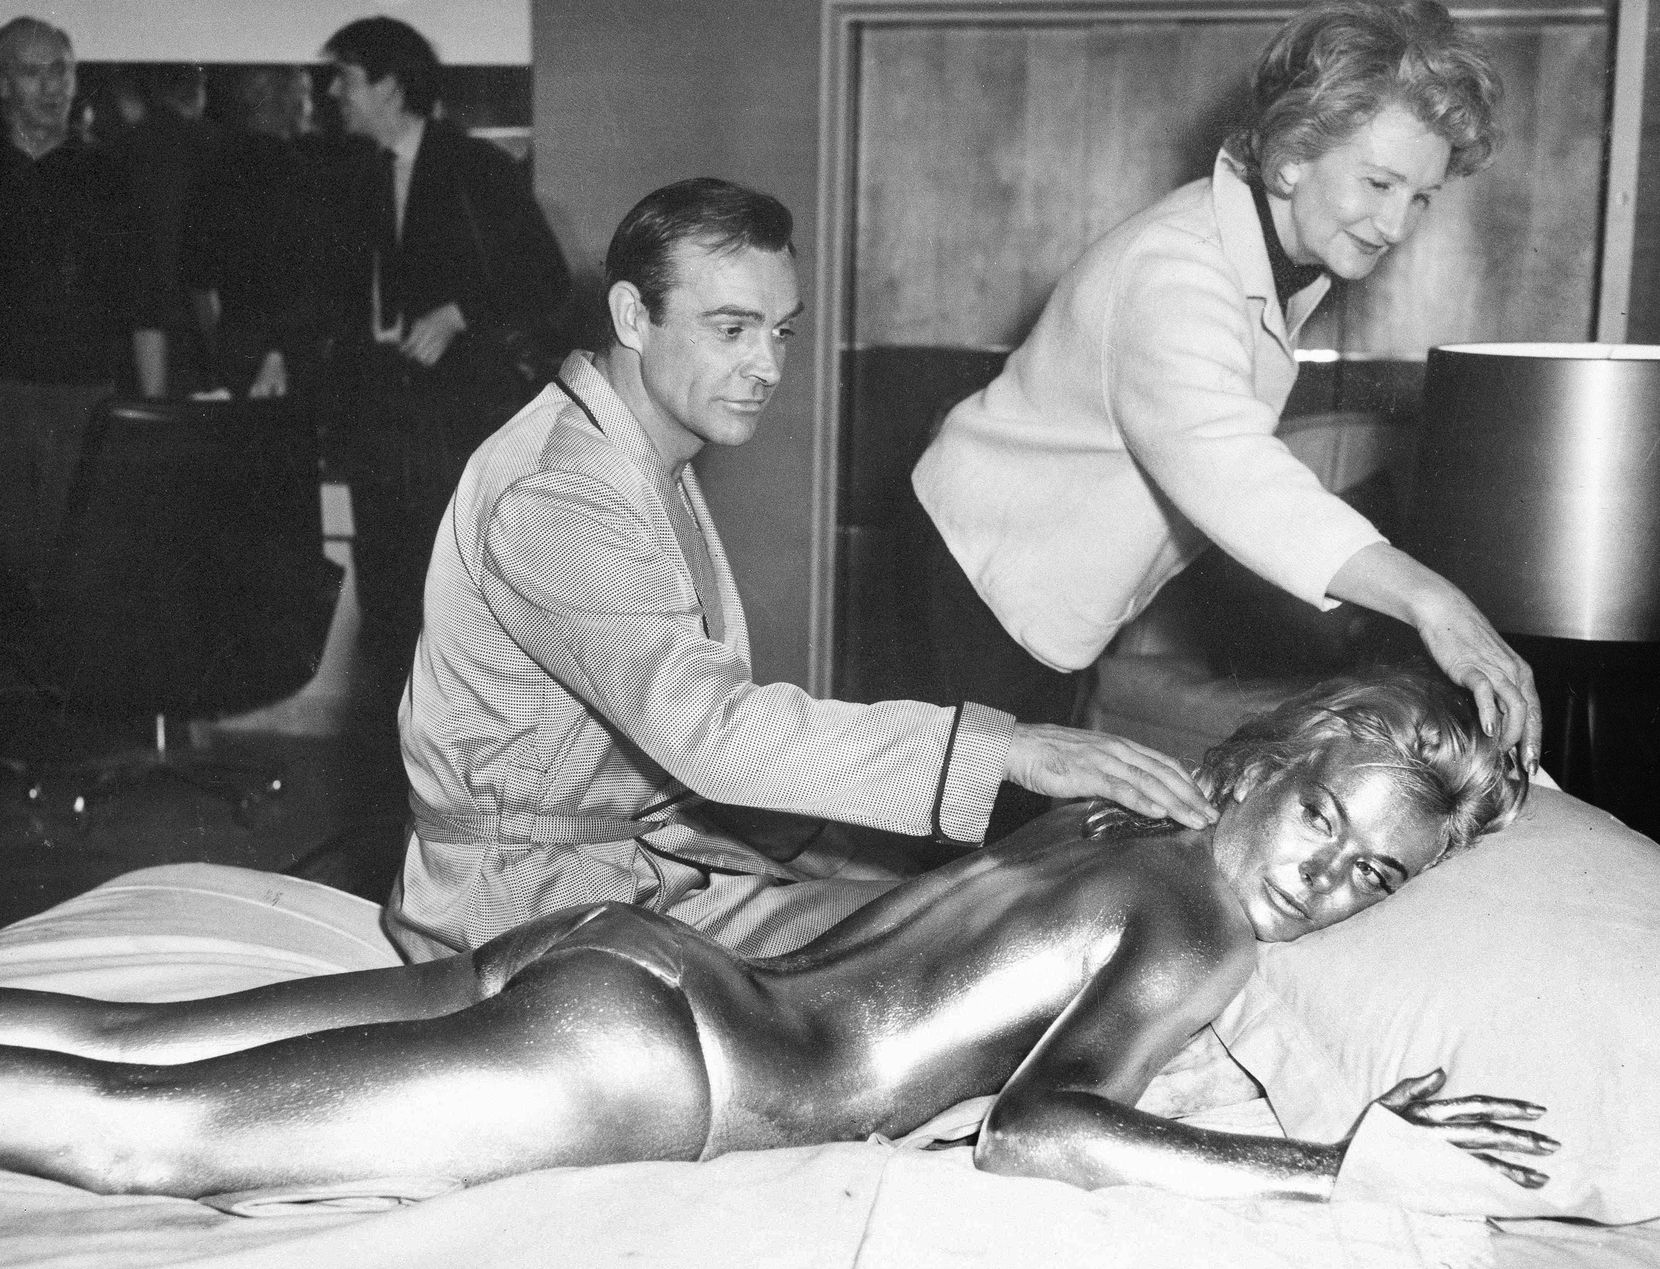 """In 1964, James Bond, aliasean Connery, finds himself in a sticky situation with actress Shirley Eaton at Pinewood Studios, near London. Eaton was given a liberal coating of gold paint for a scene in the Bond thriller """"Goldfinger."""""""